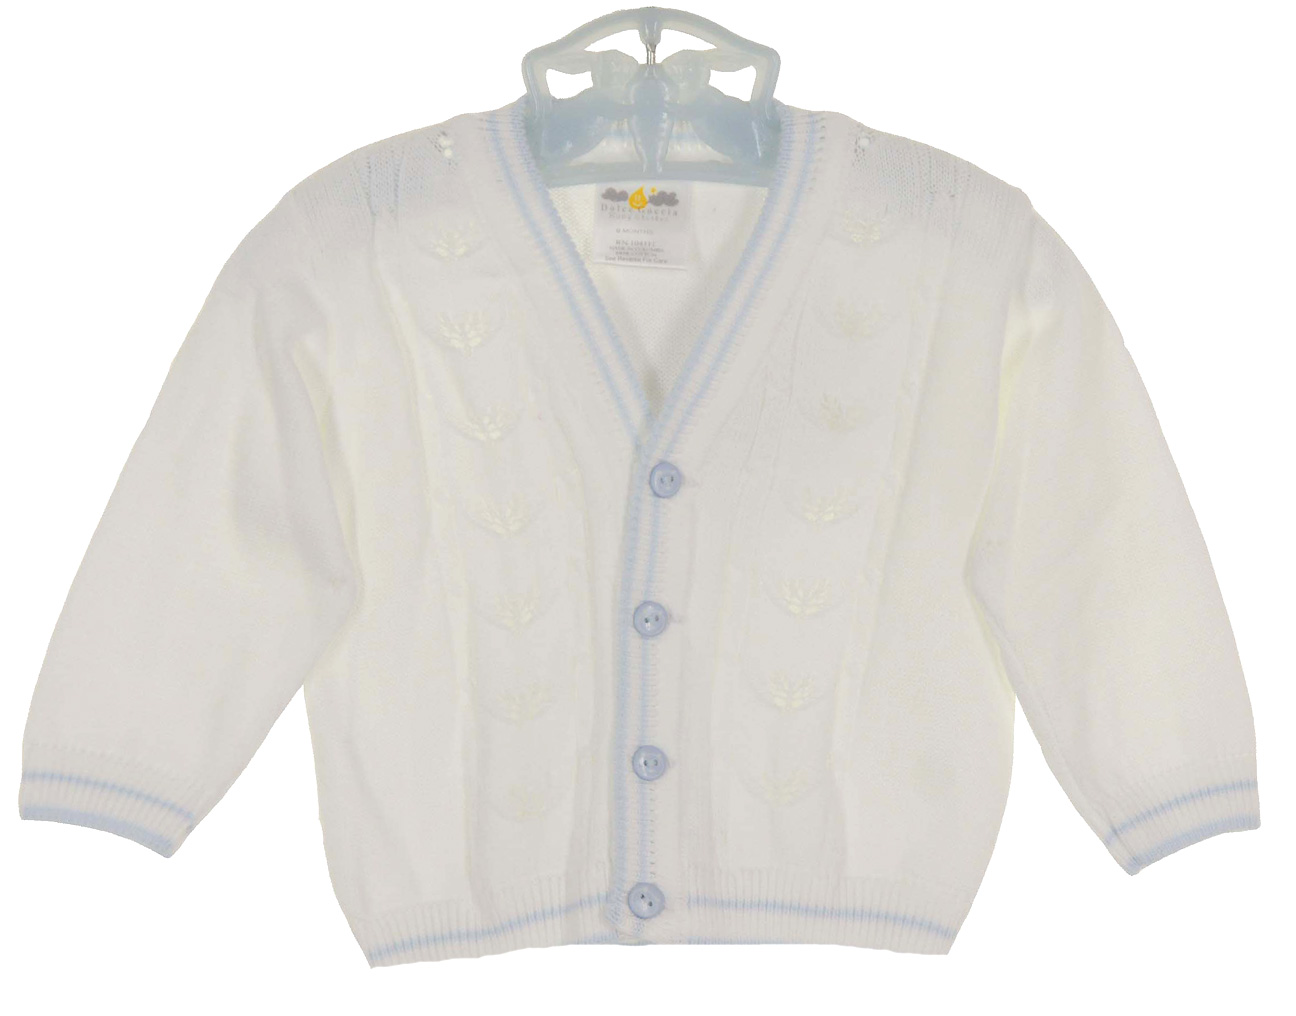 Dolce Goccia white cotton sweater with blue trim,delicate white ...